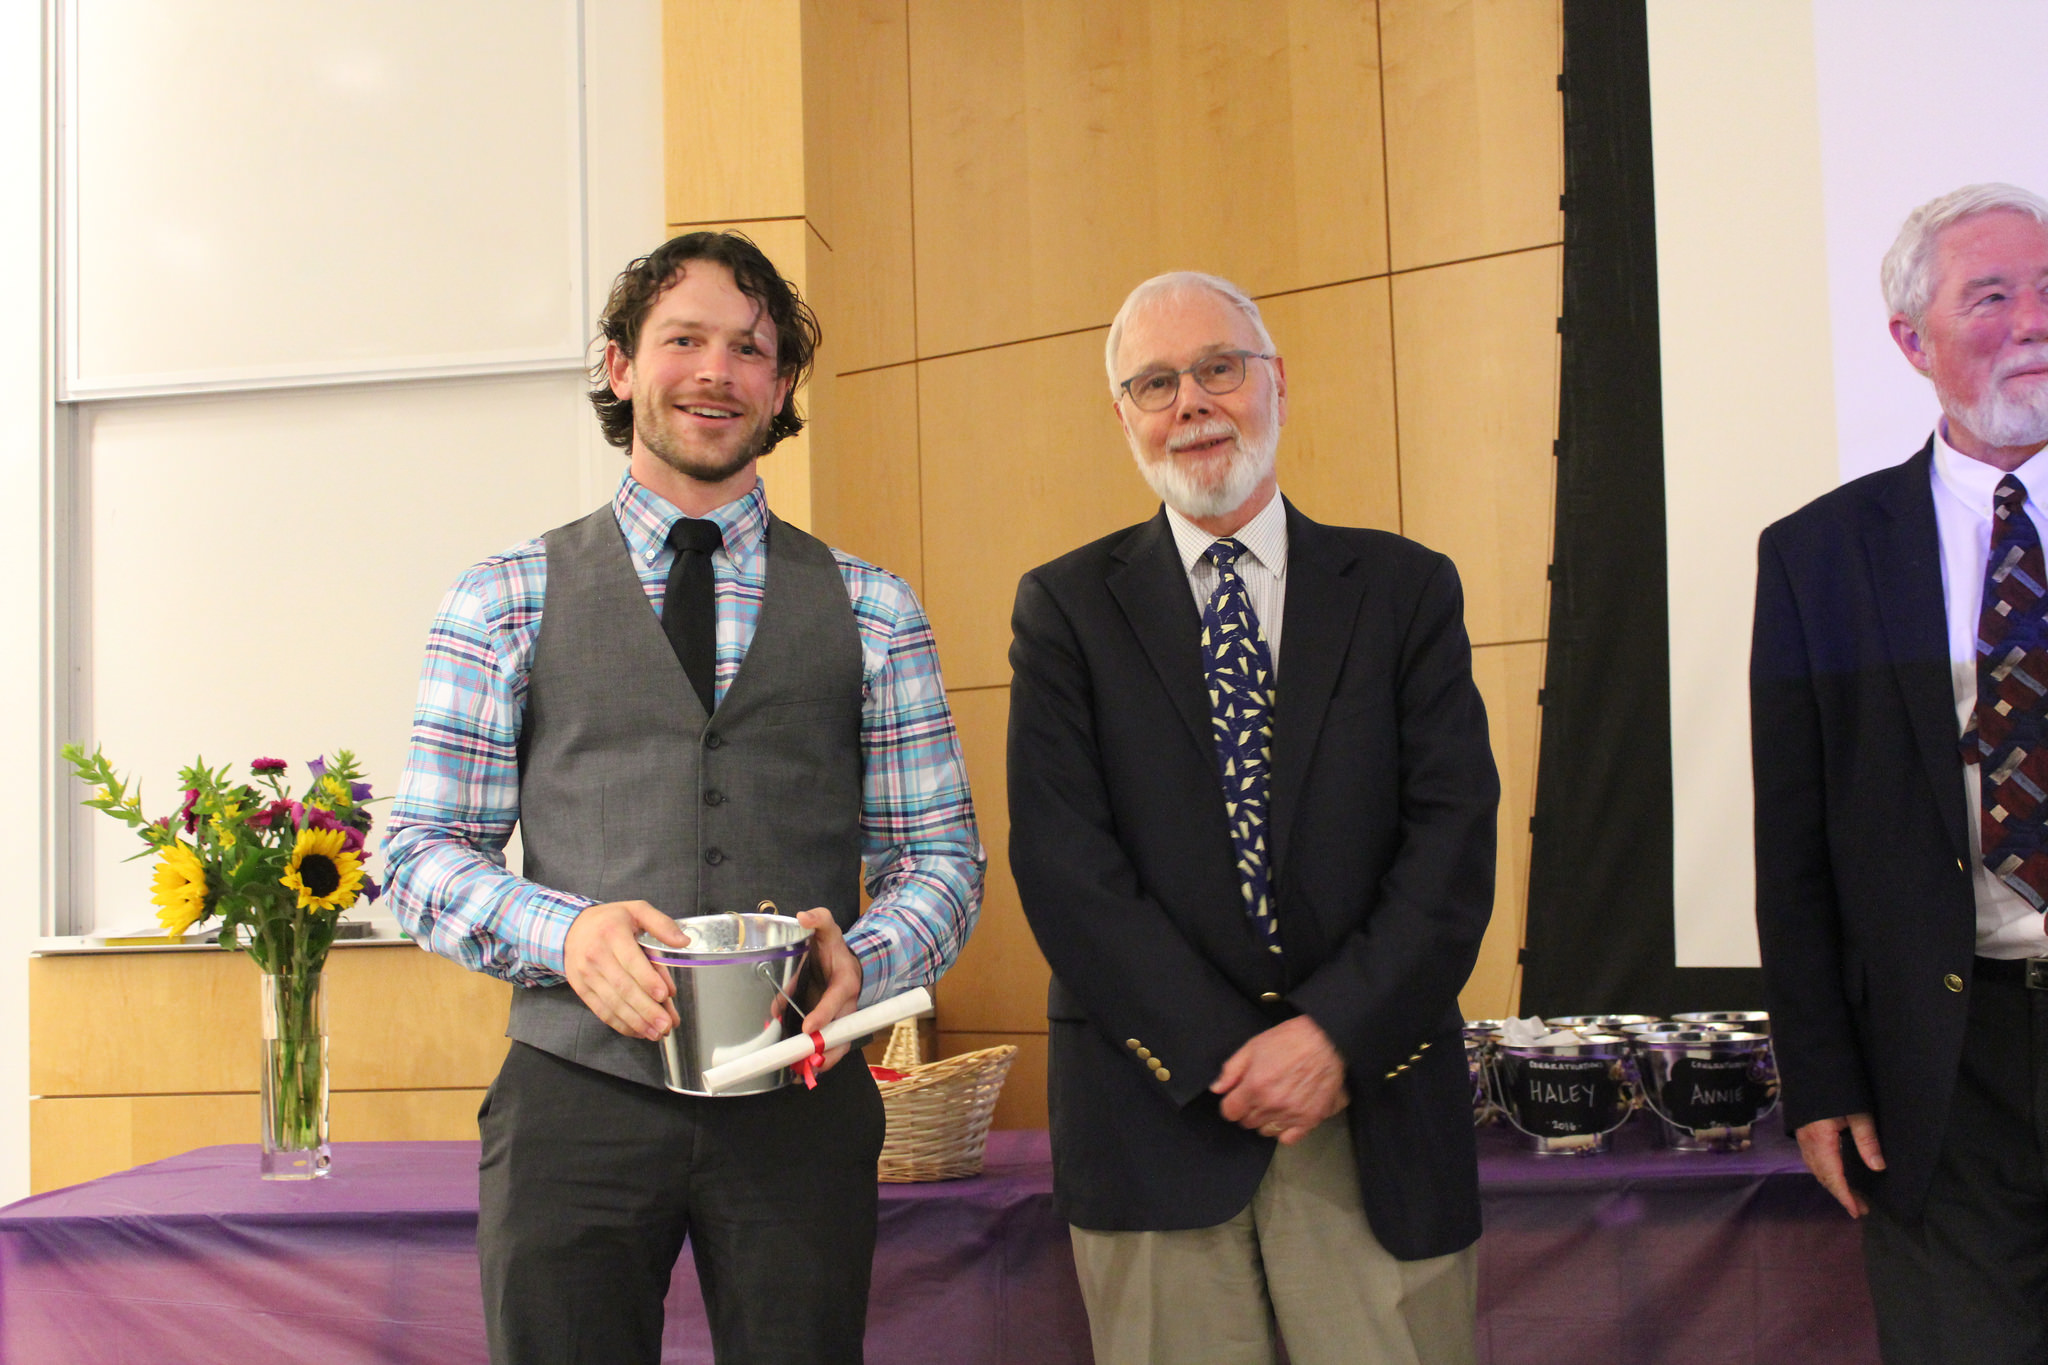 Chris Giordano after receiving his diploma from Professor Leschine.